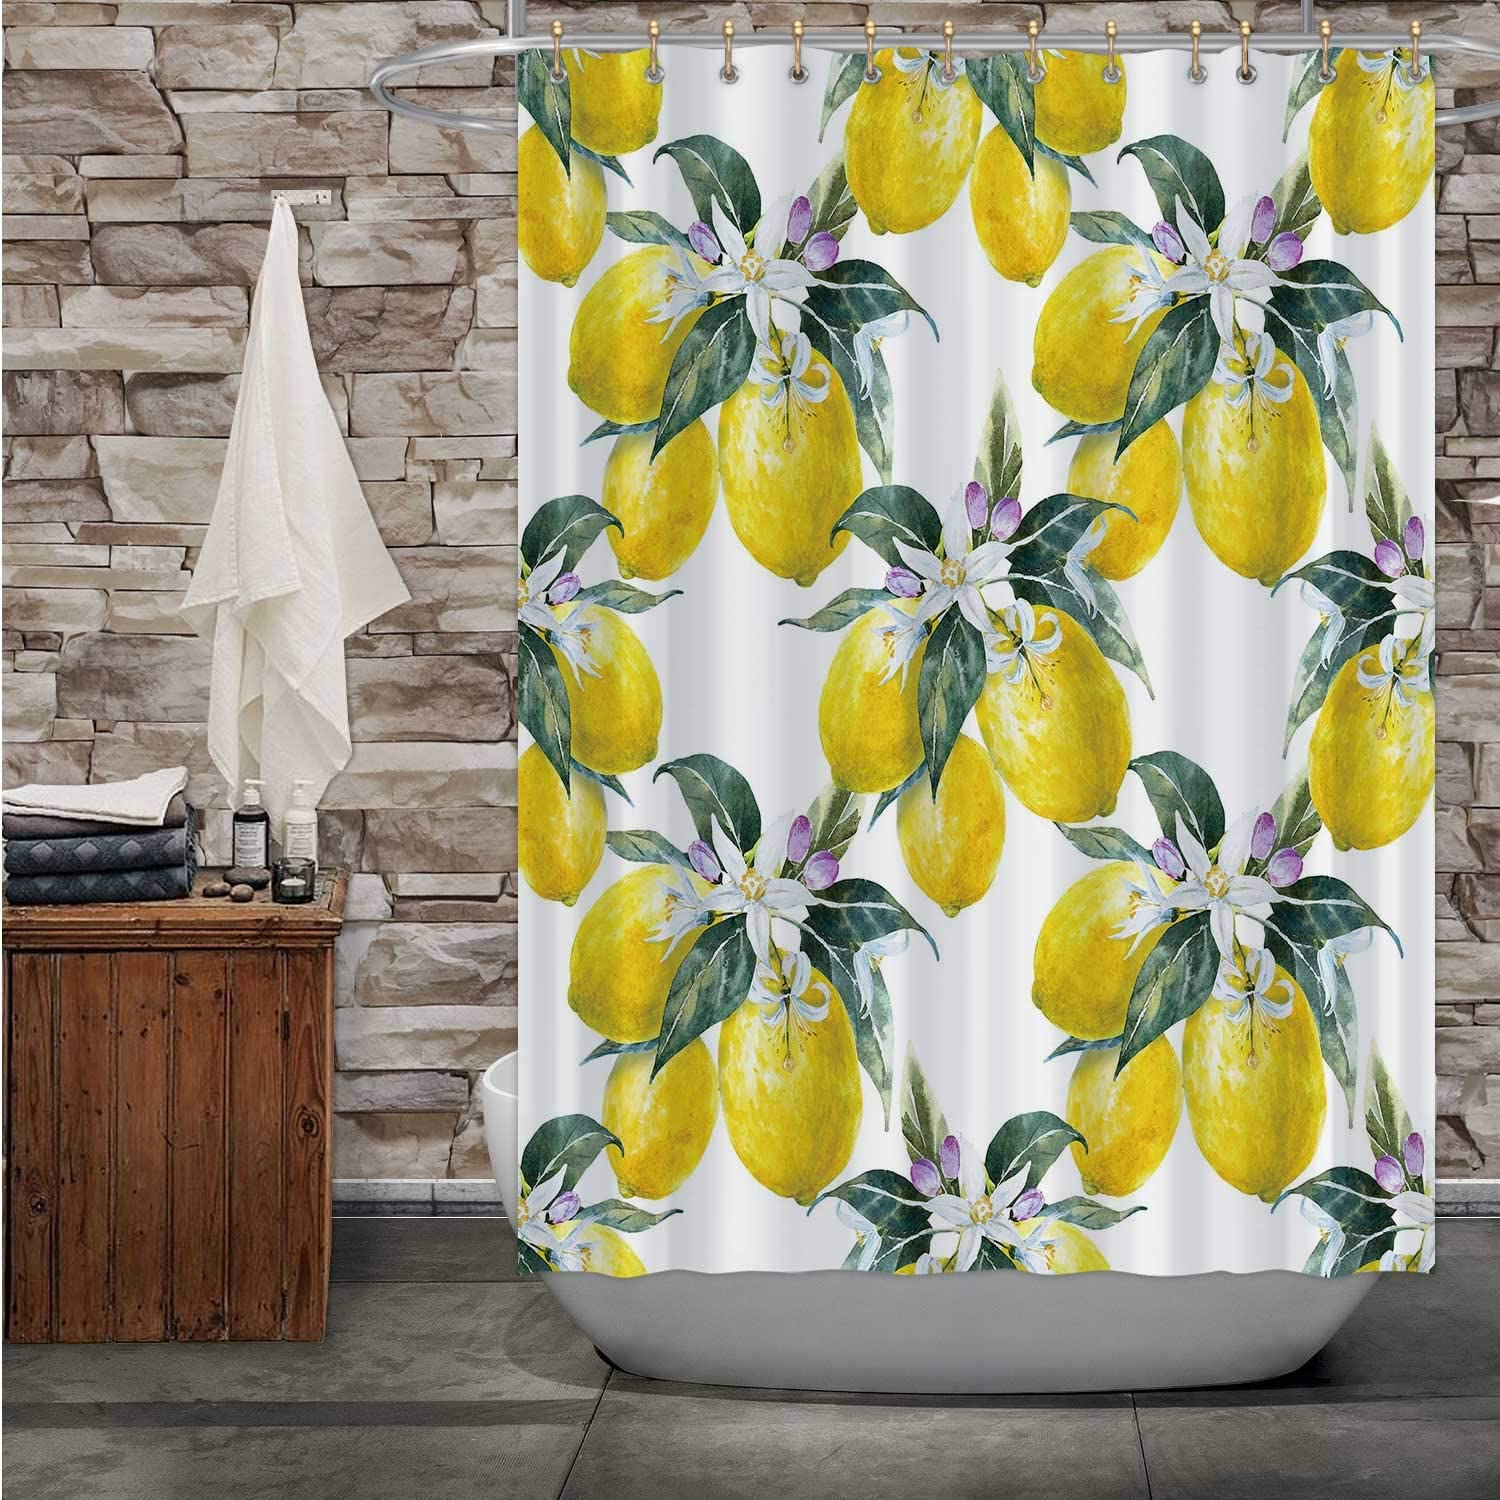 Pattern Blooming Lemon,Fabric Shower Curtain Lemon Fruit with Flowers for Bathroom Decor 72''Wx72''H